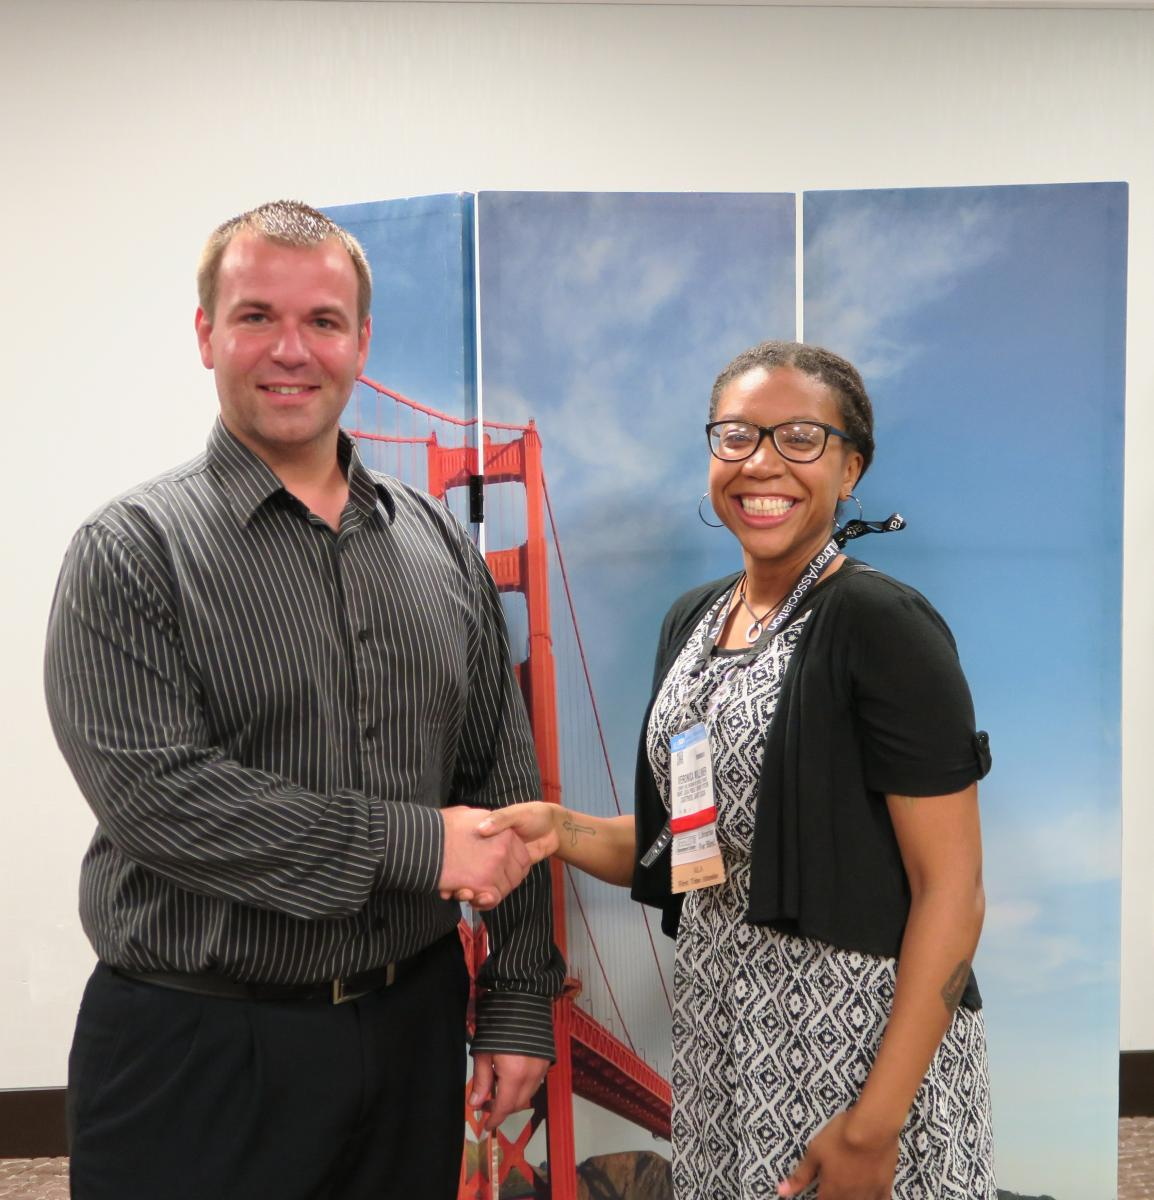 NMRT/Mango Languages Professional Development Grant Award Winner Veronica Leigh Milliner with Mango Languages rep. Robert Thayer